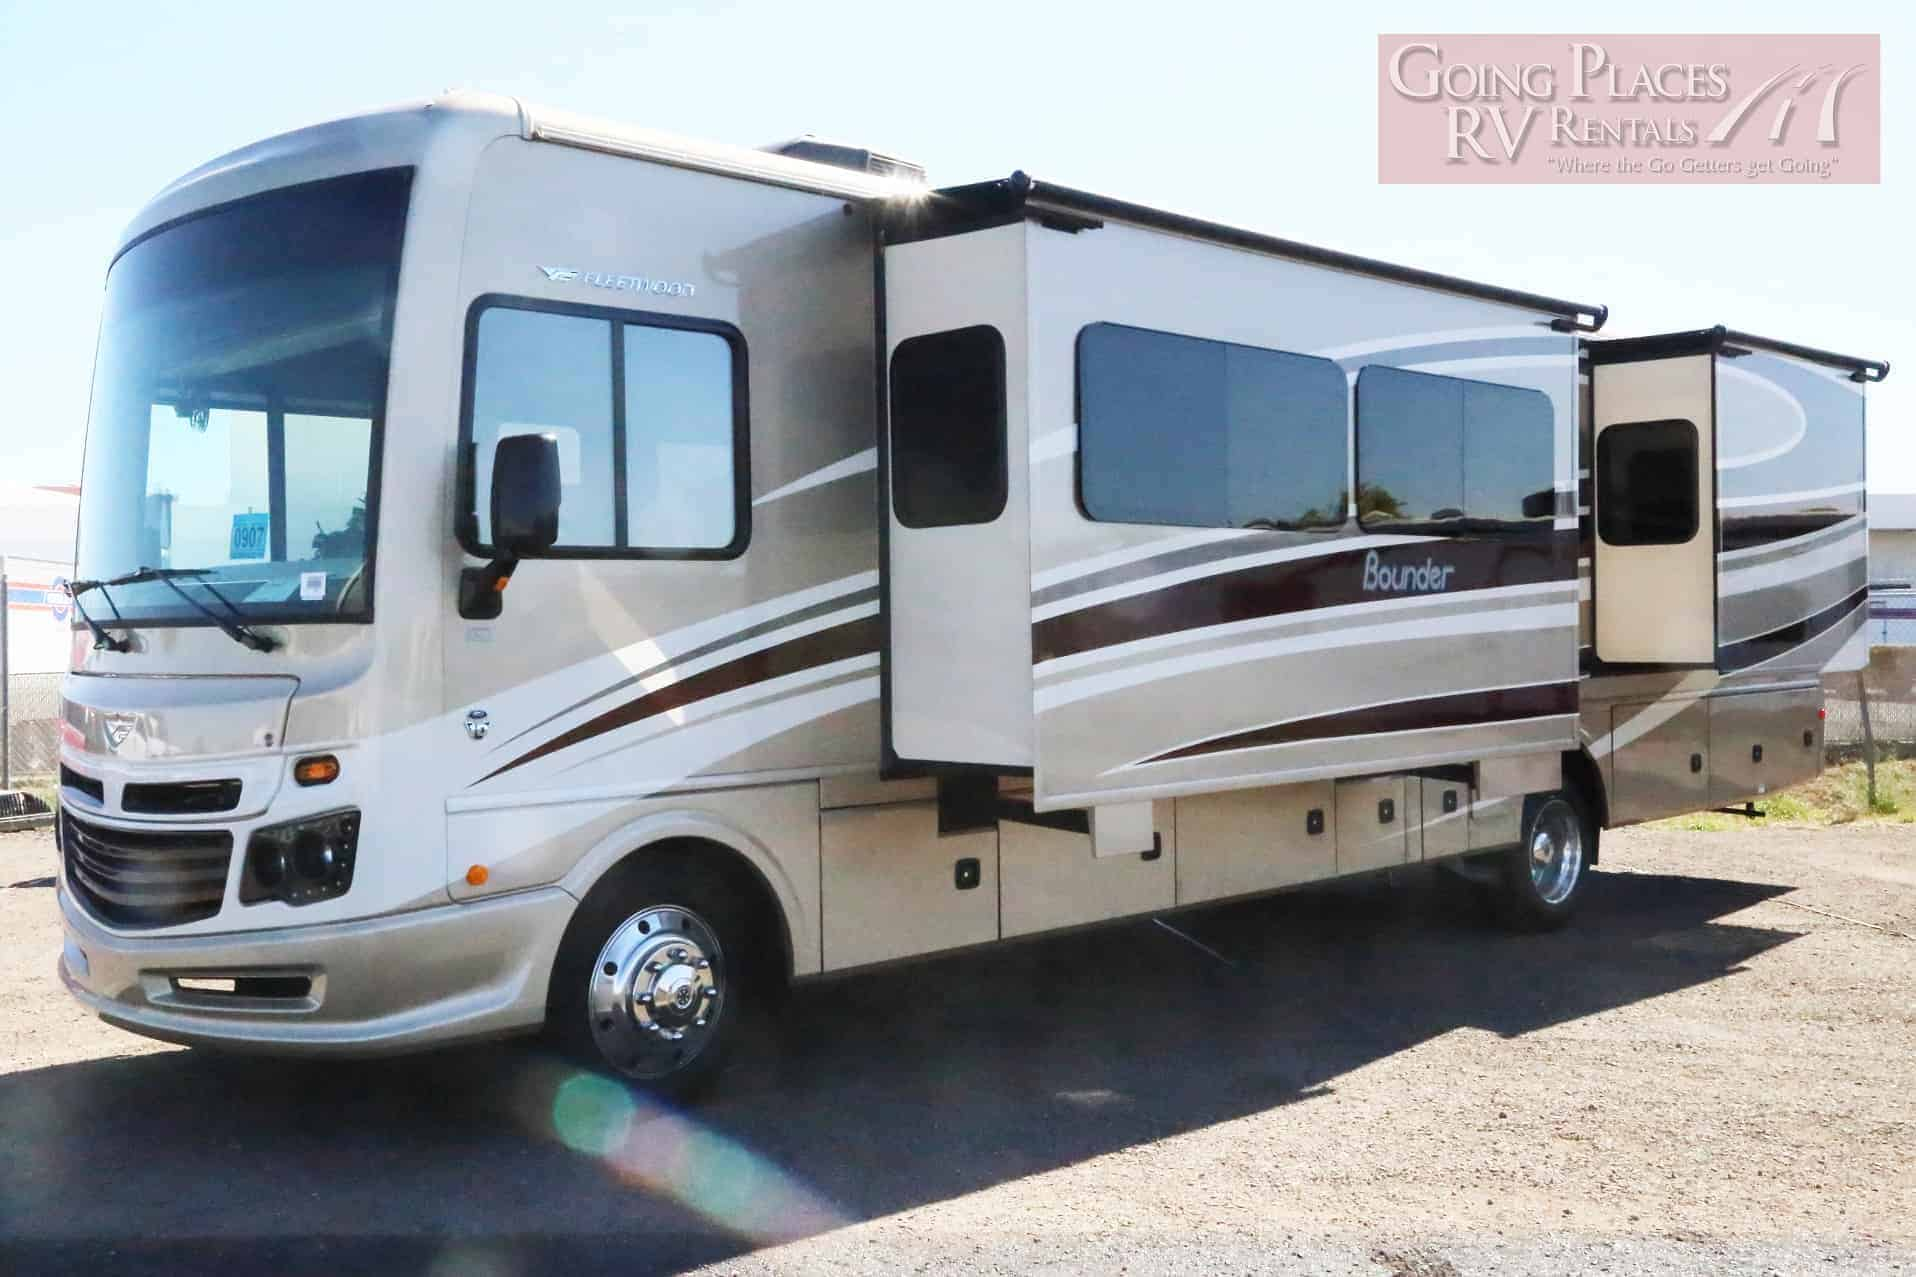 Bounder 36 ft Class A RV for rent - RV rentals Phoenix Going Places RV